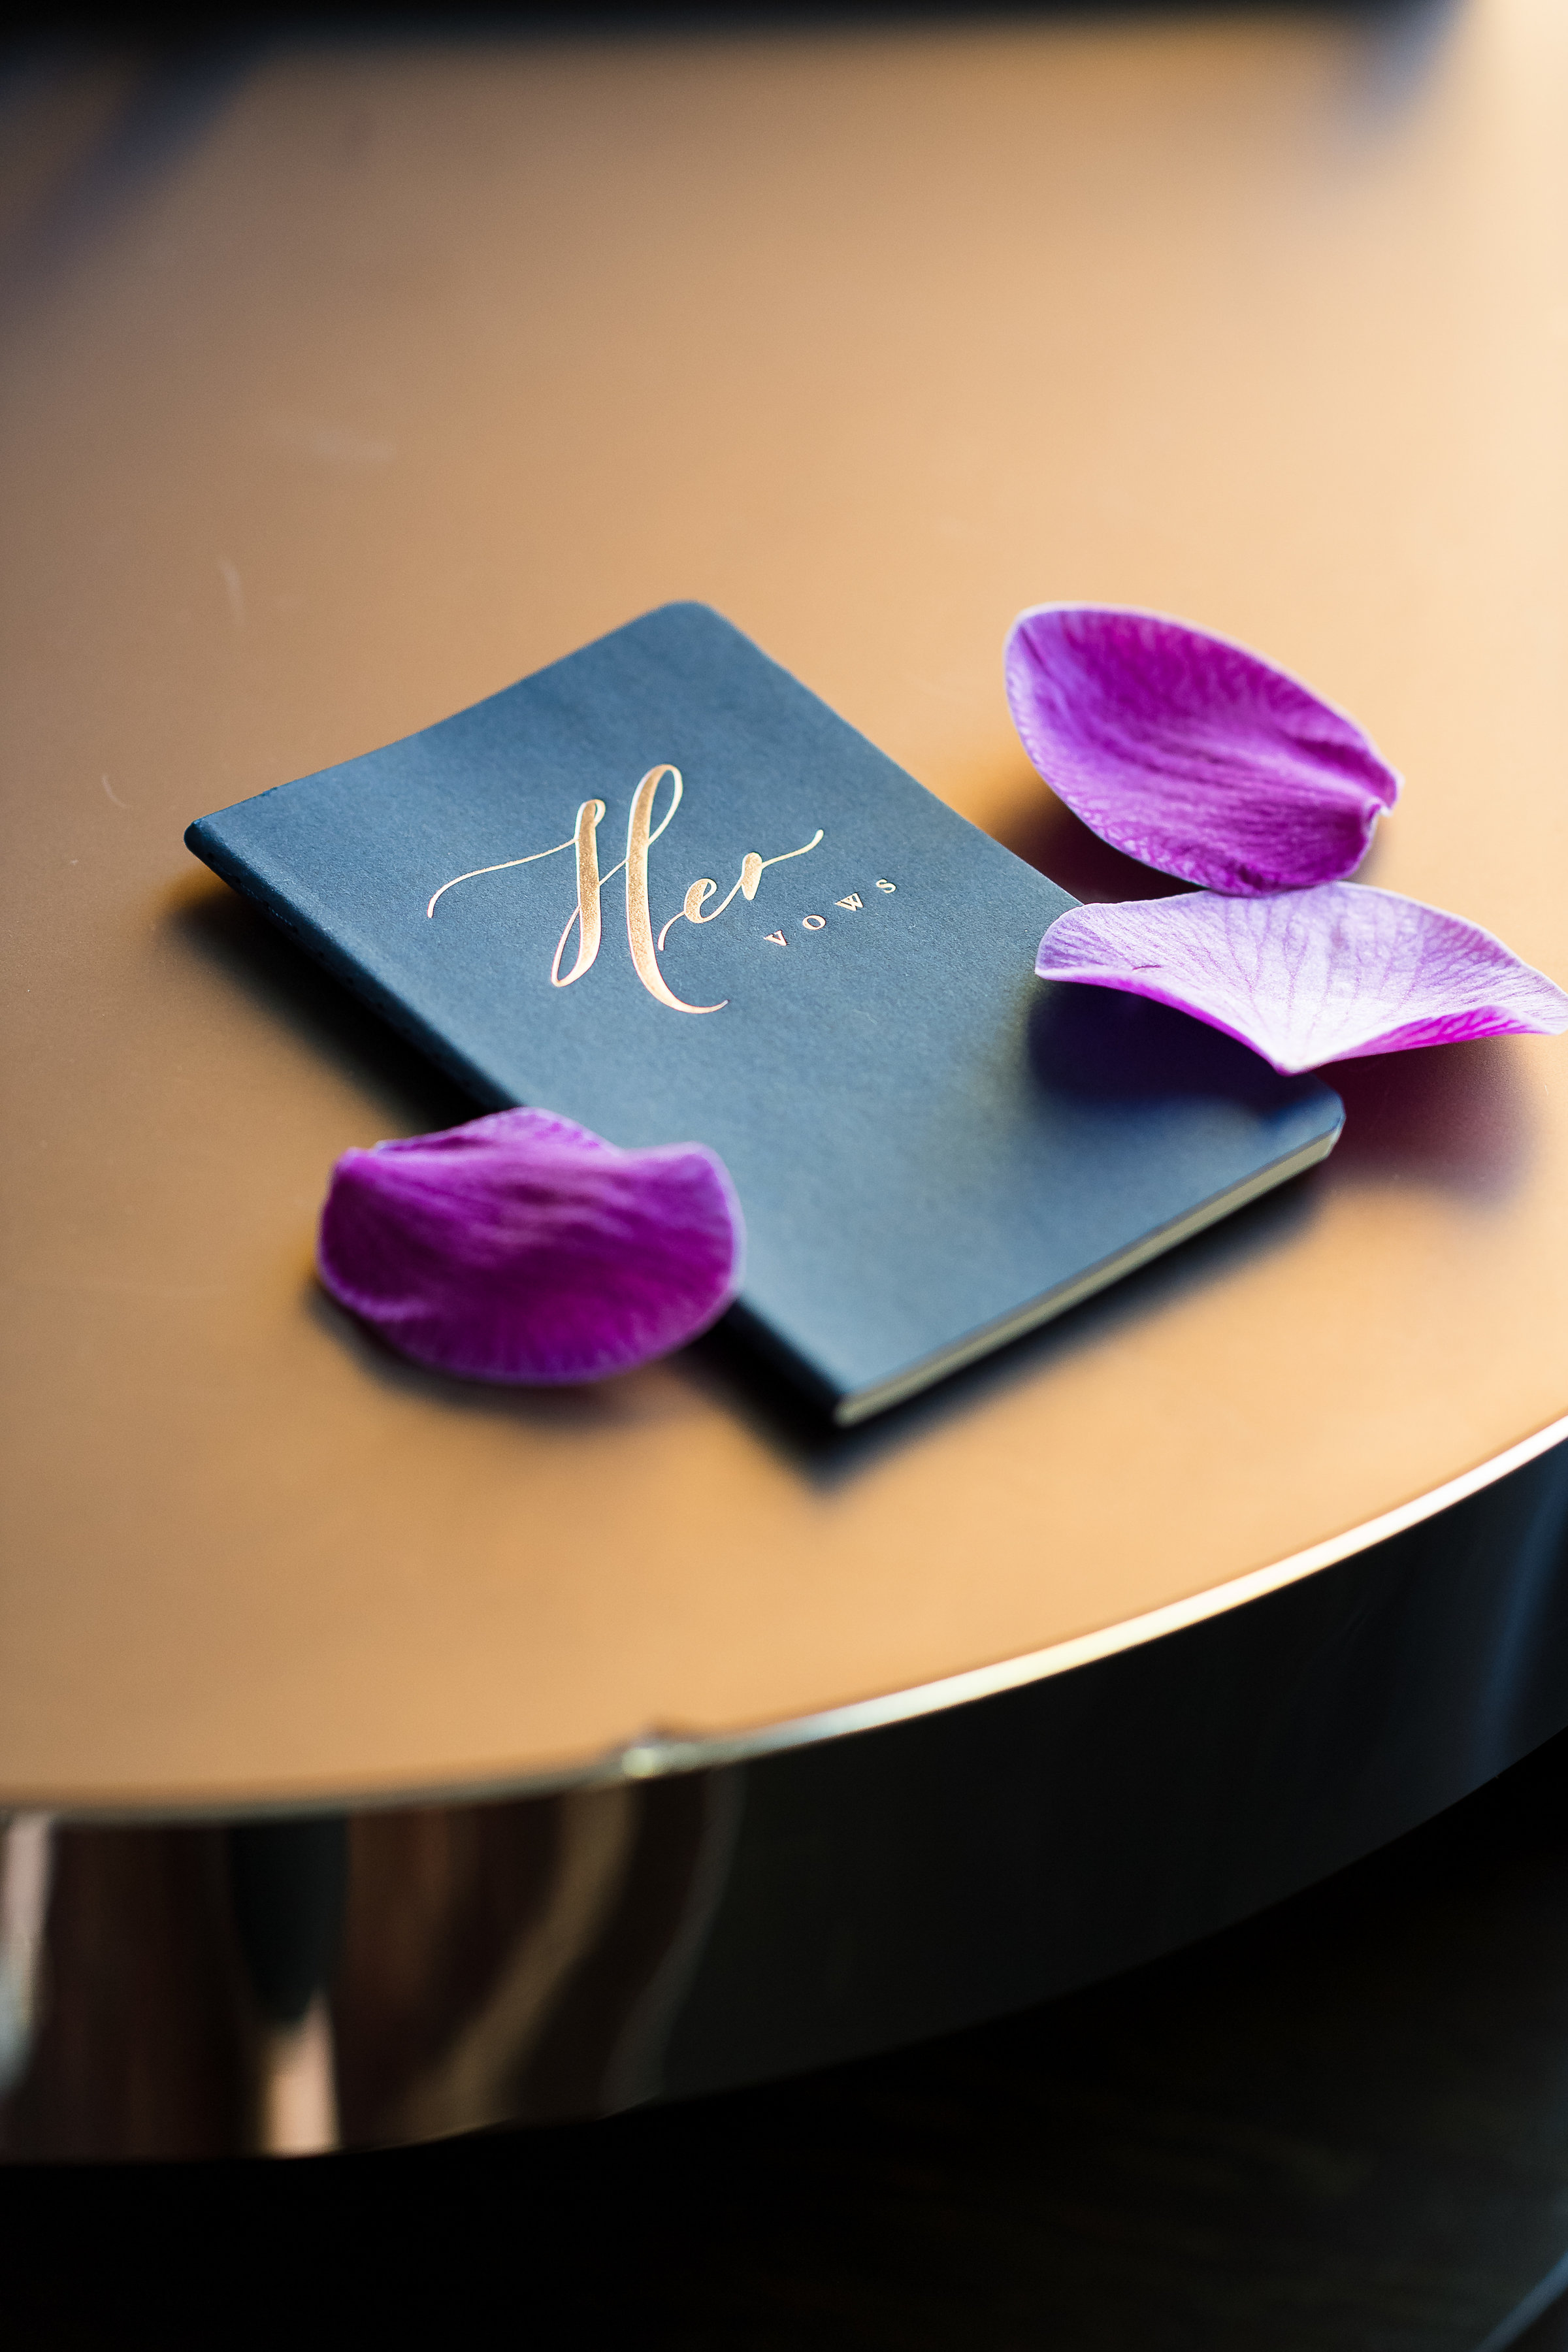 Vow Books.Wedding Planner: Andrea Eppolito Events    Photography  Brian Leahy    Videography  HOO Films    Venue & Catering:  Mandarin Oriental  / Waldorf Astoria   Floral & Decor: Destinations by Design    Lighting: LED Unplugged    Music:  DJ Breeze II    Hair & Make Up: Amelia C & Co